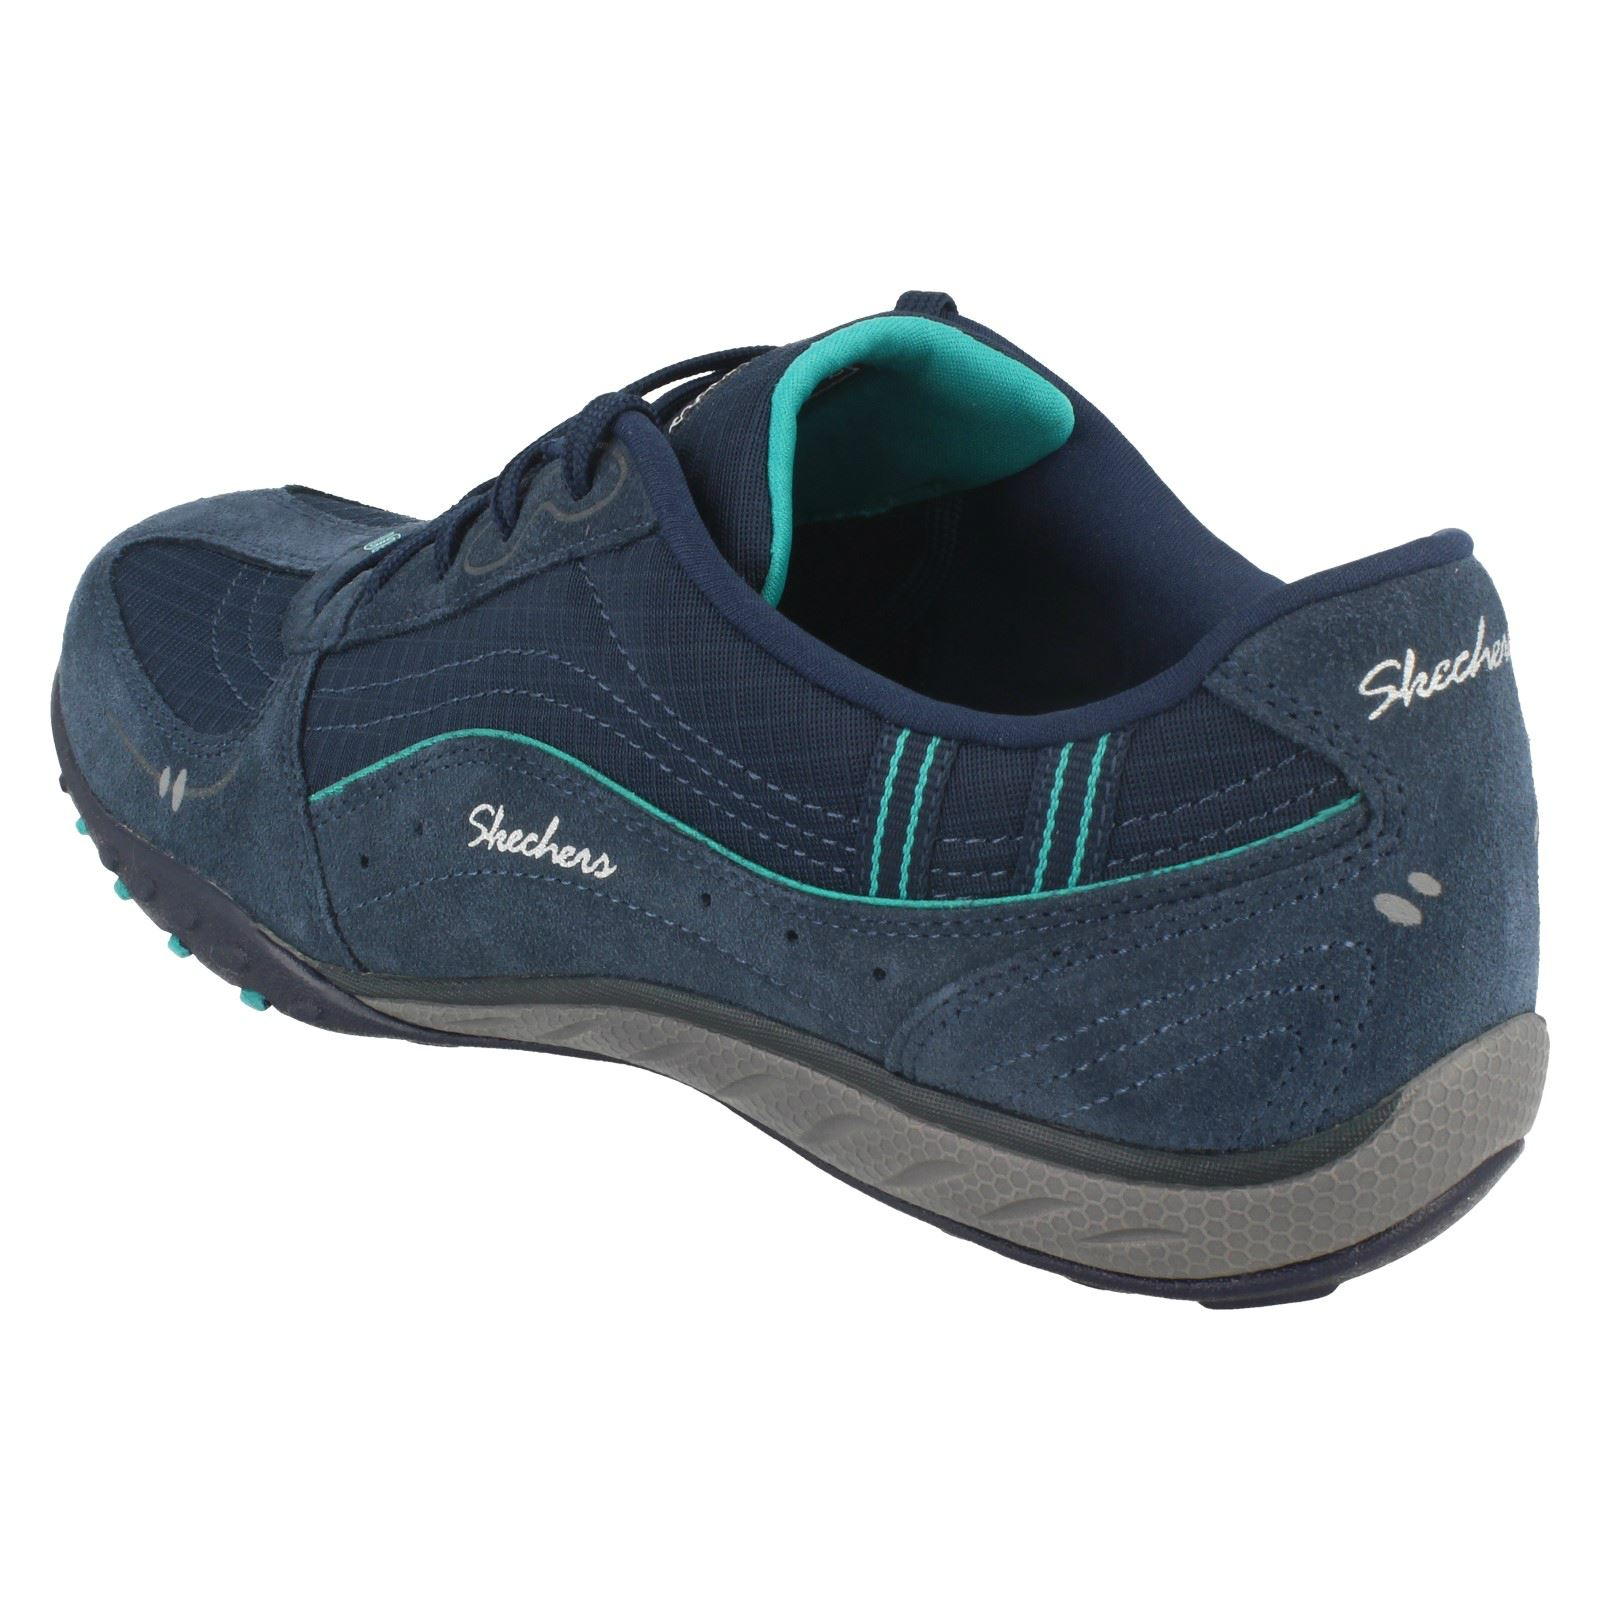 Ladies Skechers Relaxed Fit Trainers *Breathe Easy Just Relax*